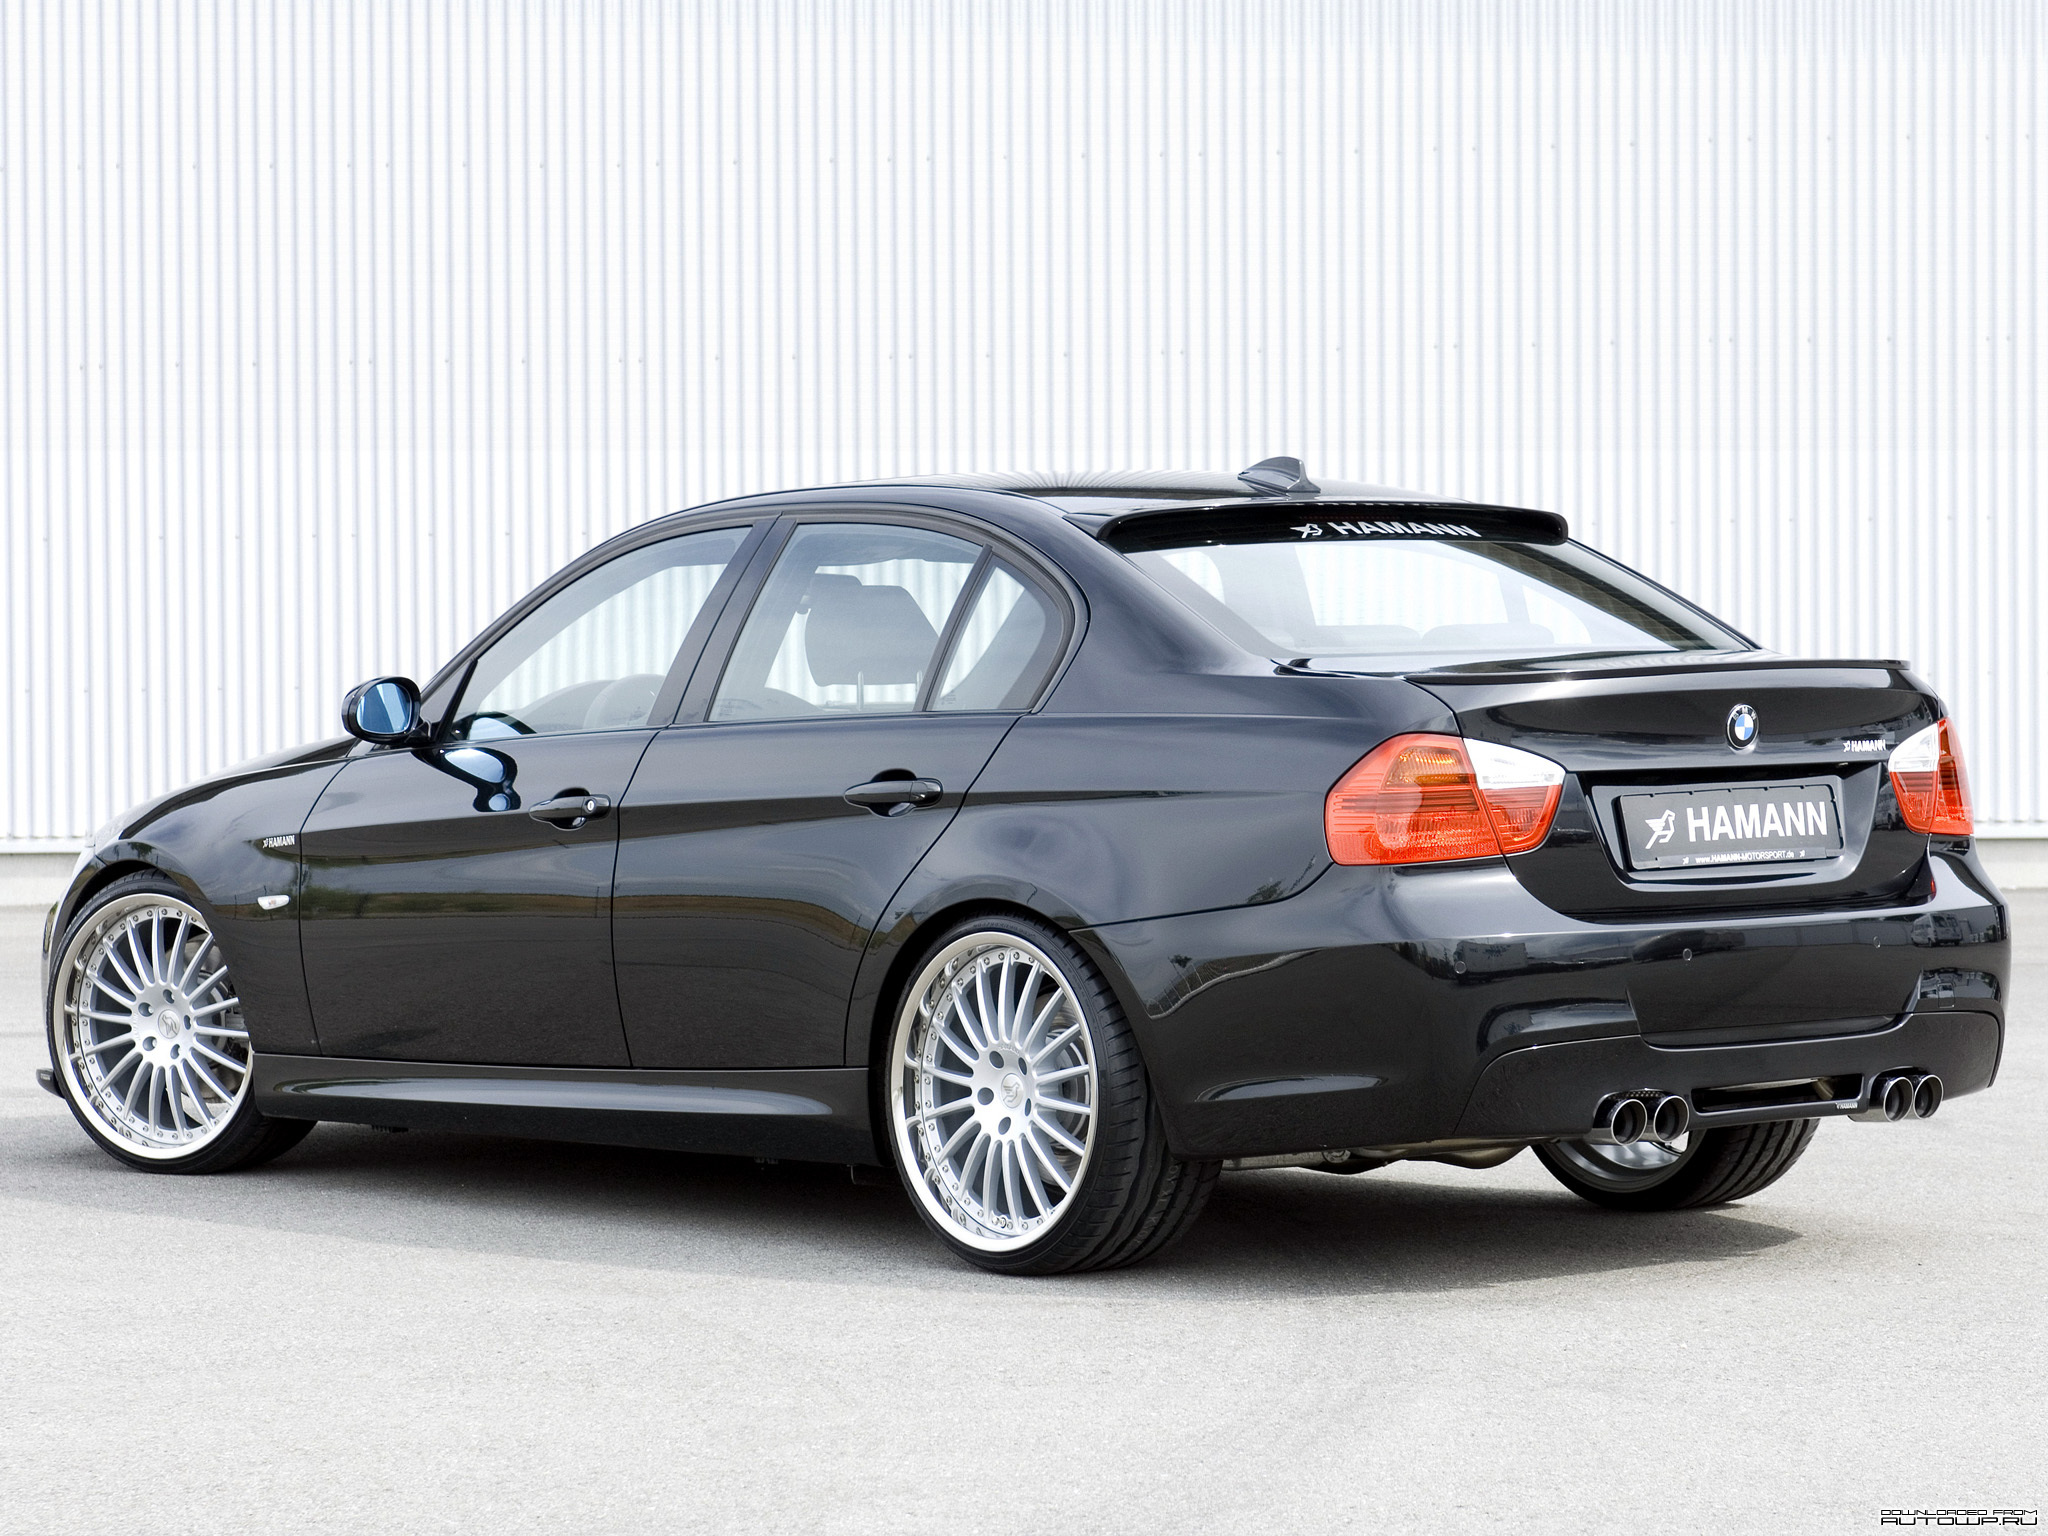 hamann bmw 3 series e90 picture 59536 hamann photo gallery. Black Bedroom Furniture Sets. Home Design Ideas